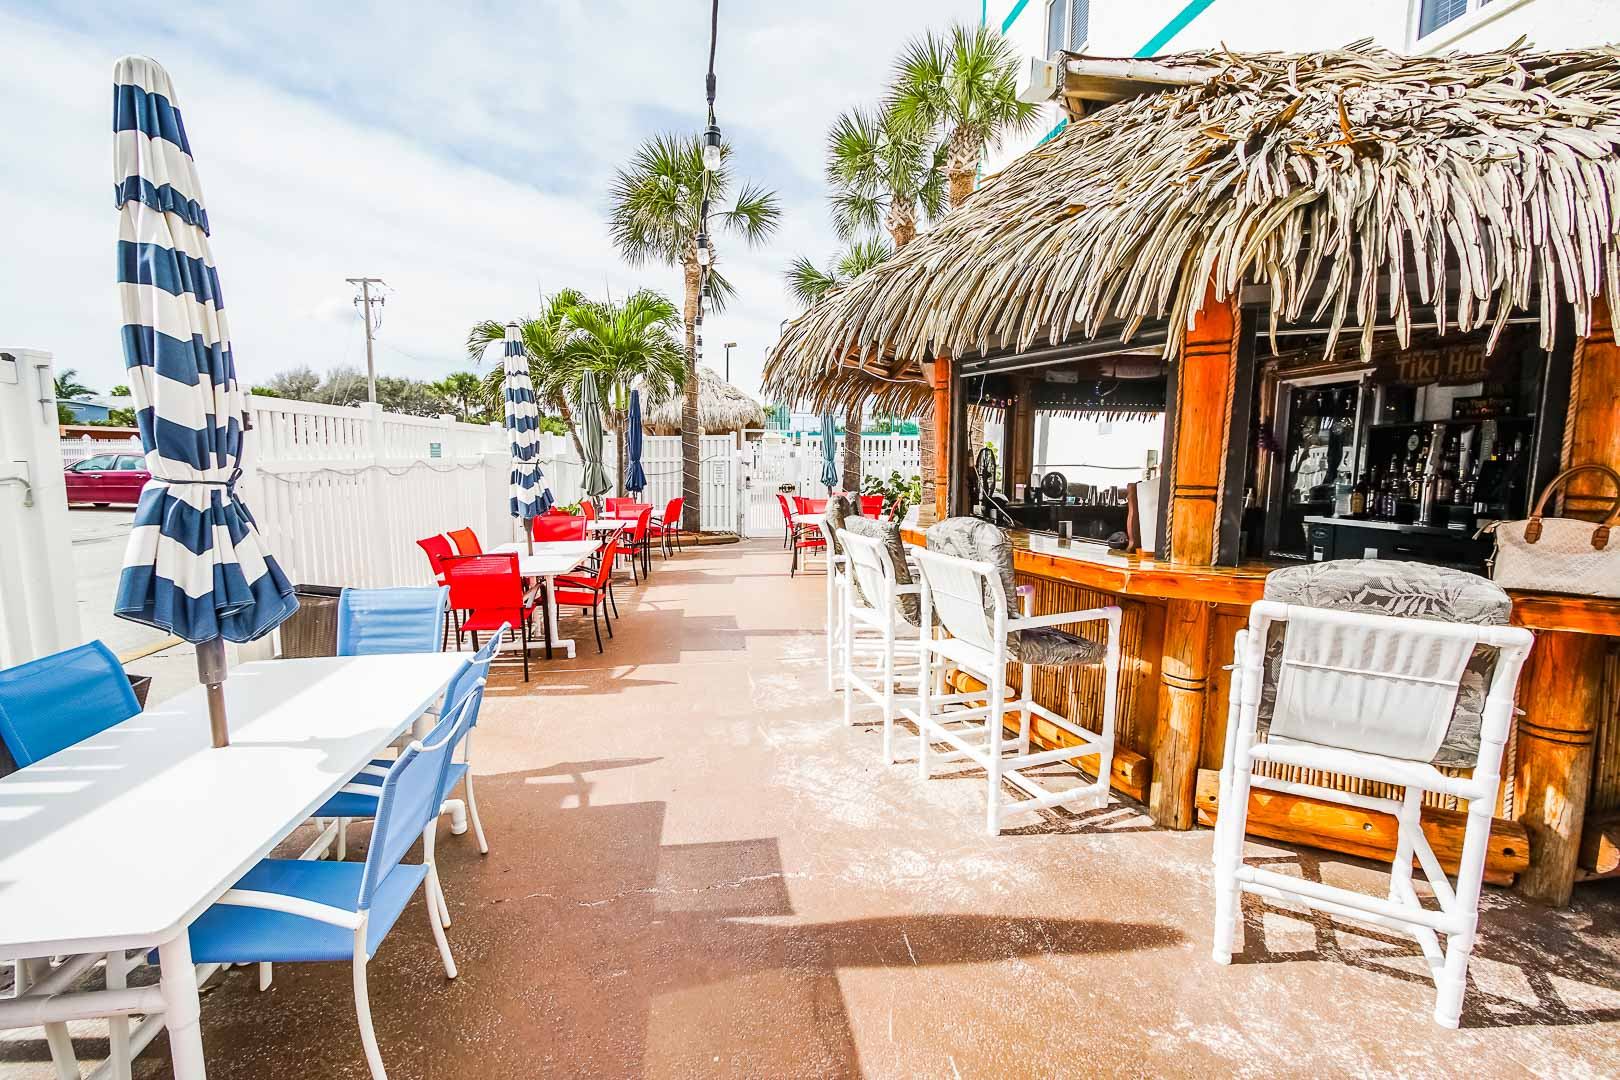 The restaurant onsite at VRI's Discovery Beach Resort in Cocoa Beach, Florida.